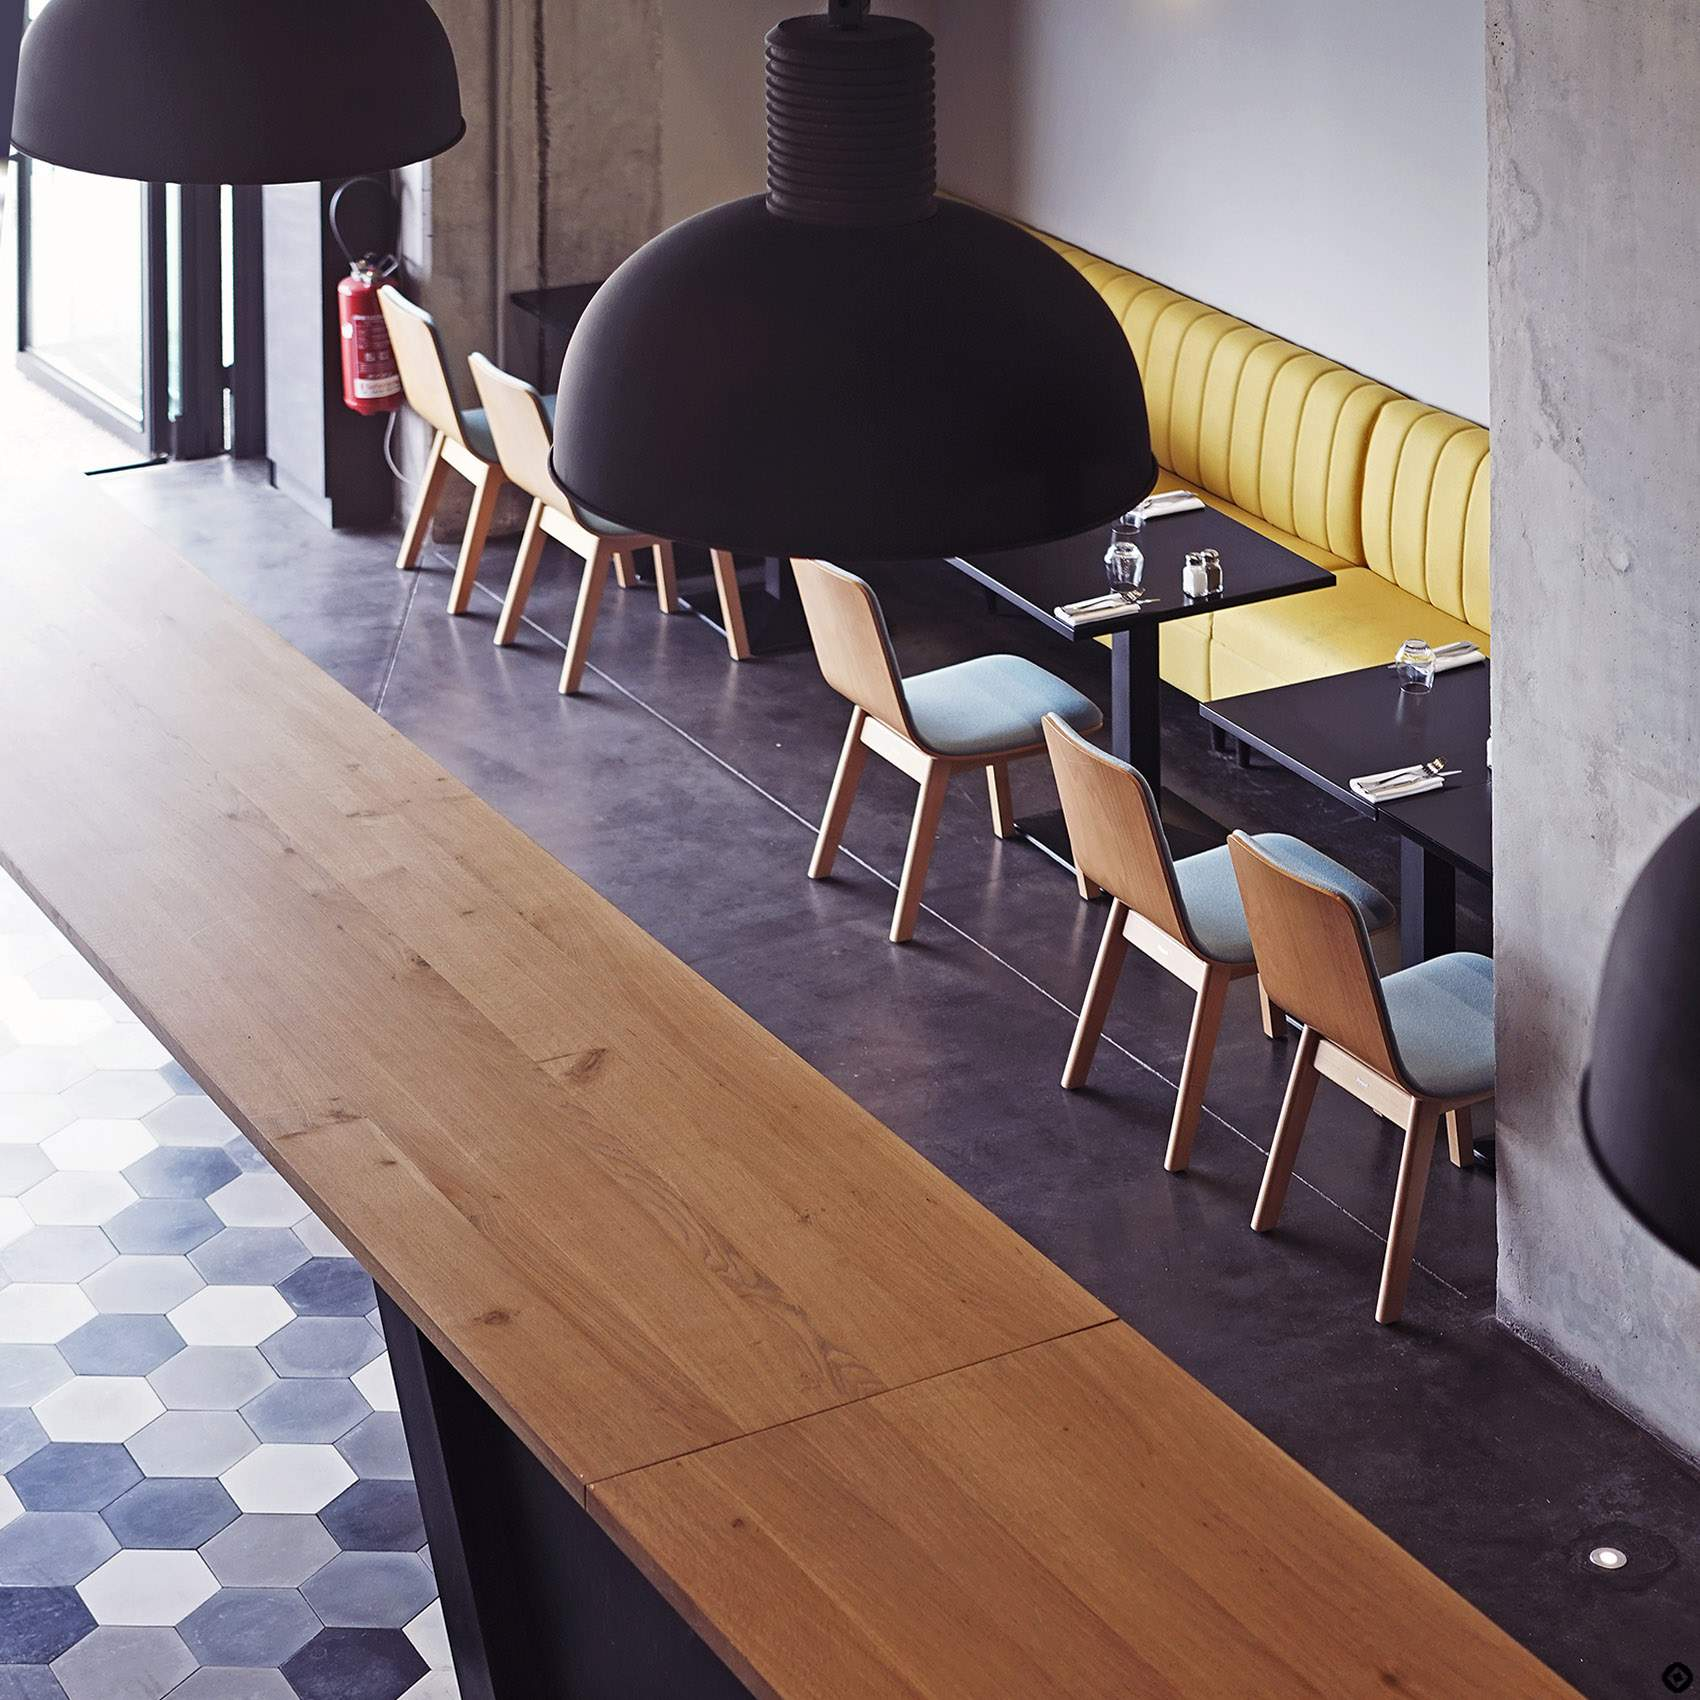 blog_restaurant-design-lembarcardere-marseille-12